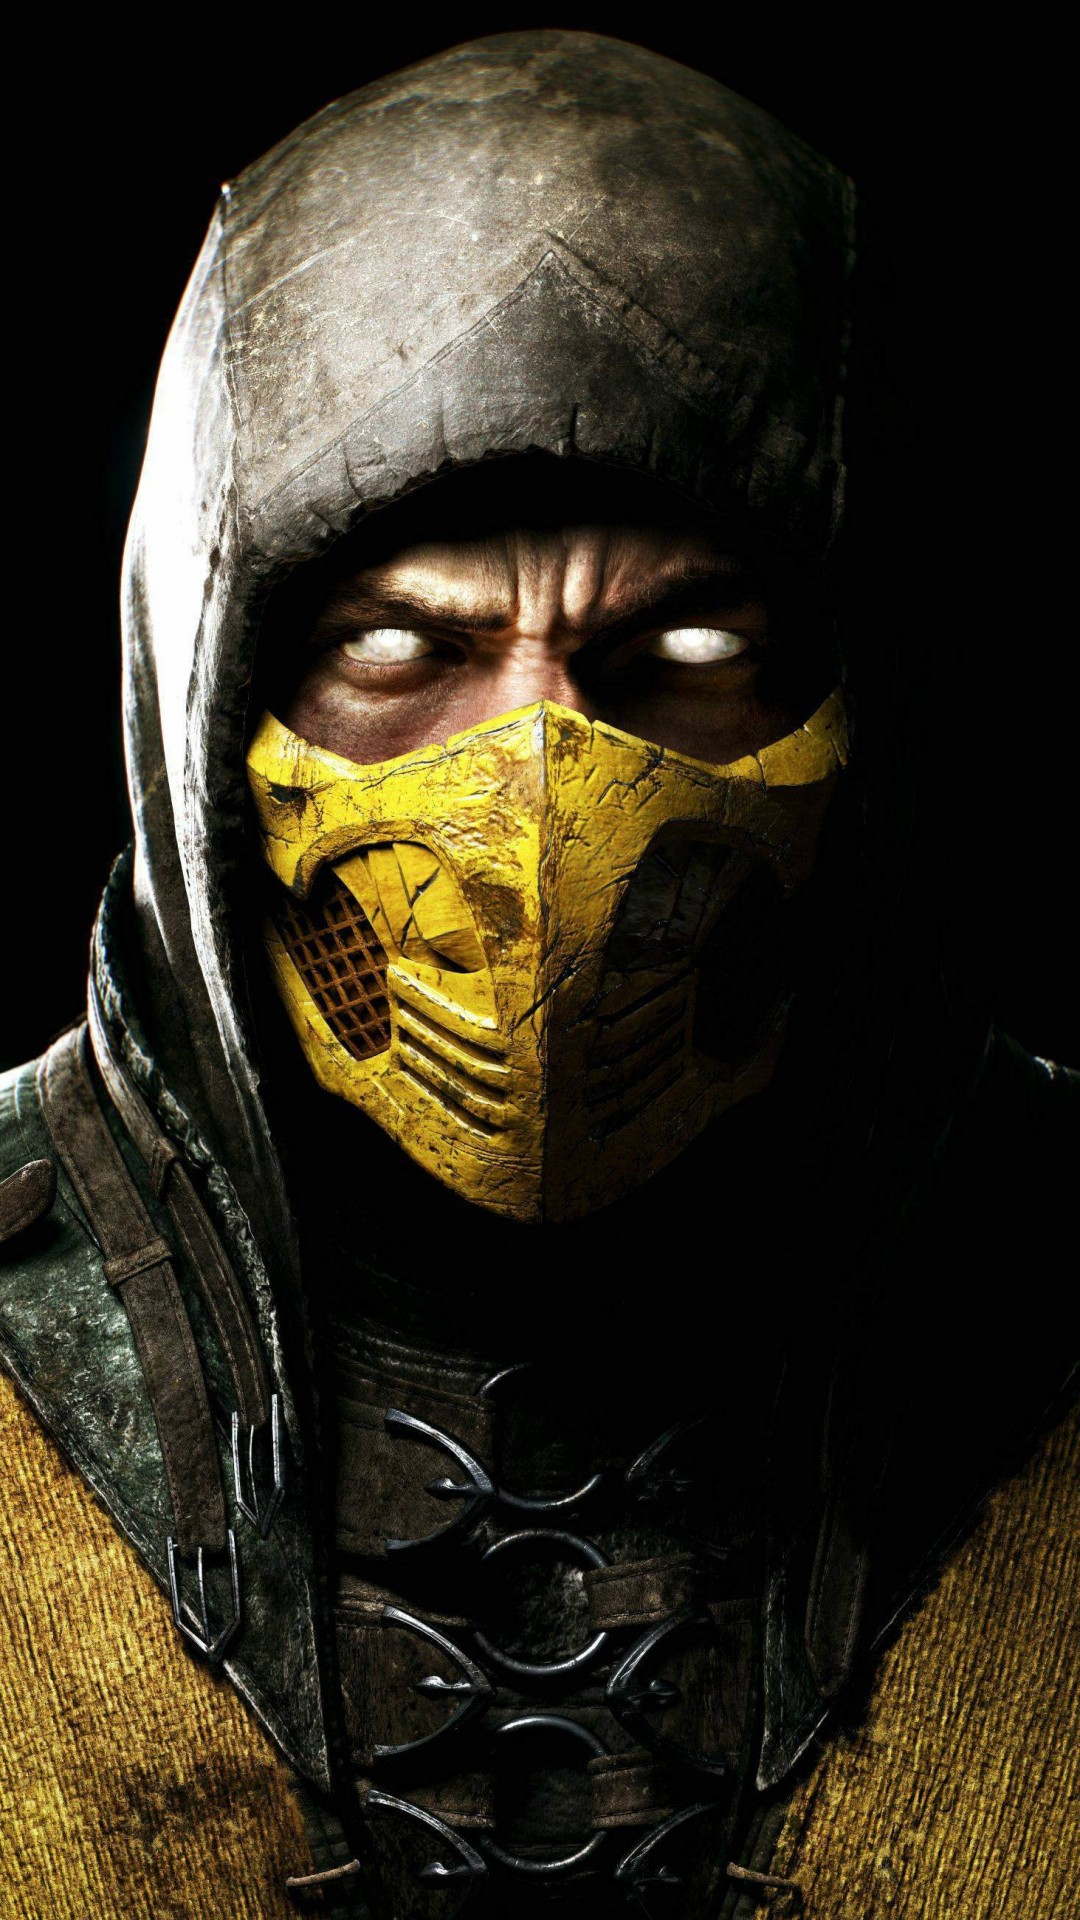 Scorpion Mortal Kombat X Wallpaper for Google Nexus 5X